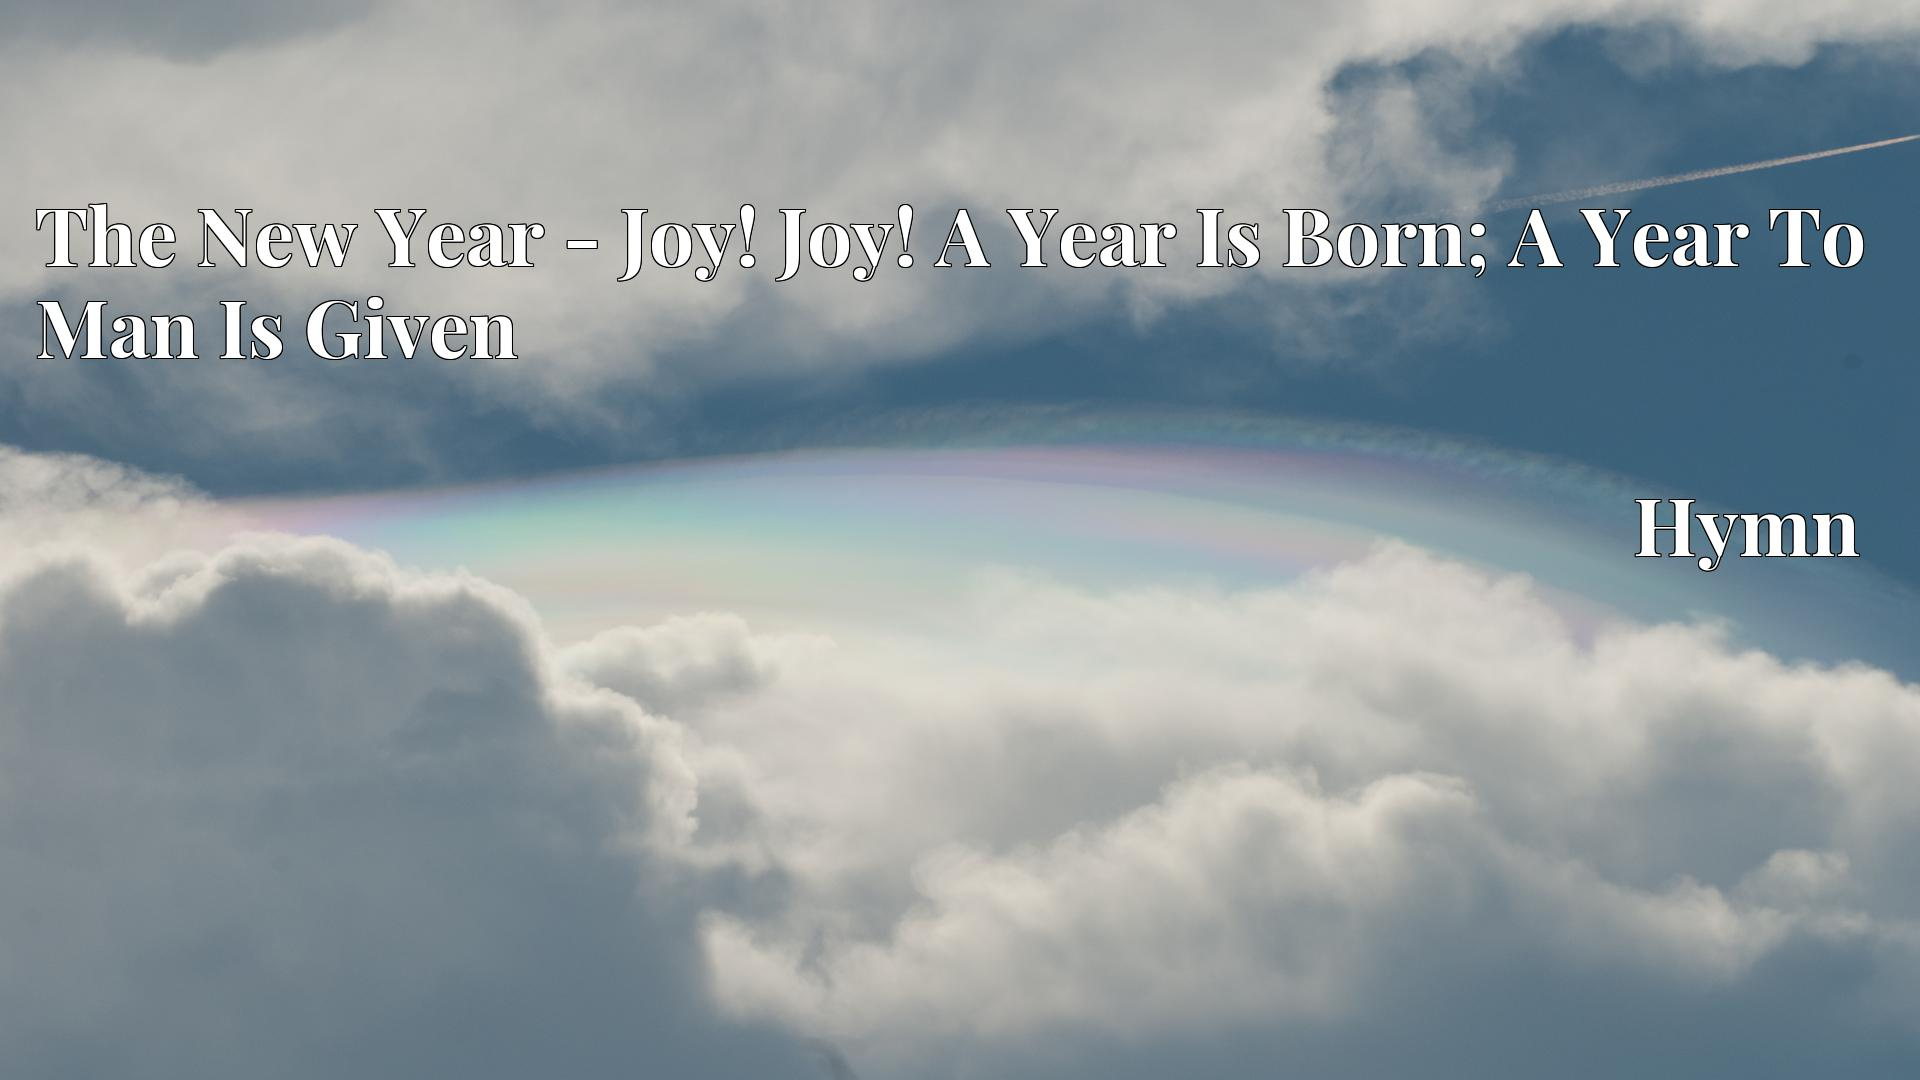 The New Year - Joy! Joy! A Year Is Born; A Year To Man Is Given - Hymn